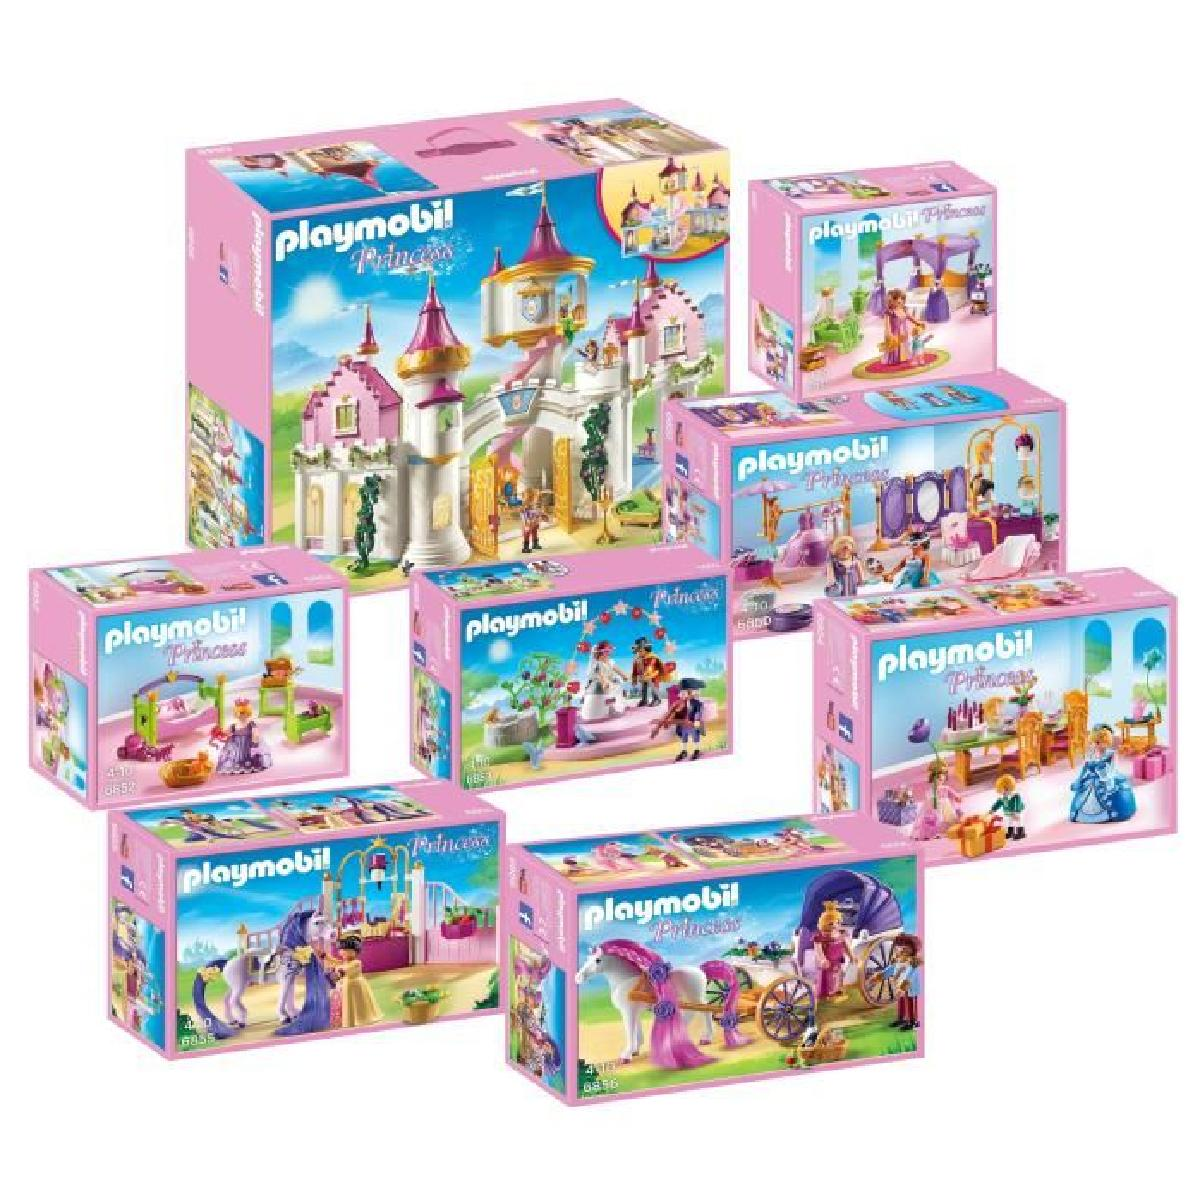 Emejing chateau princess playmobil gallery design trends 2017 for Playmobil chambre princesse